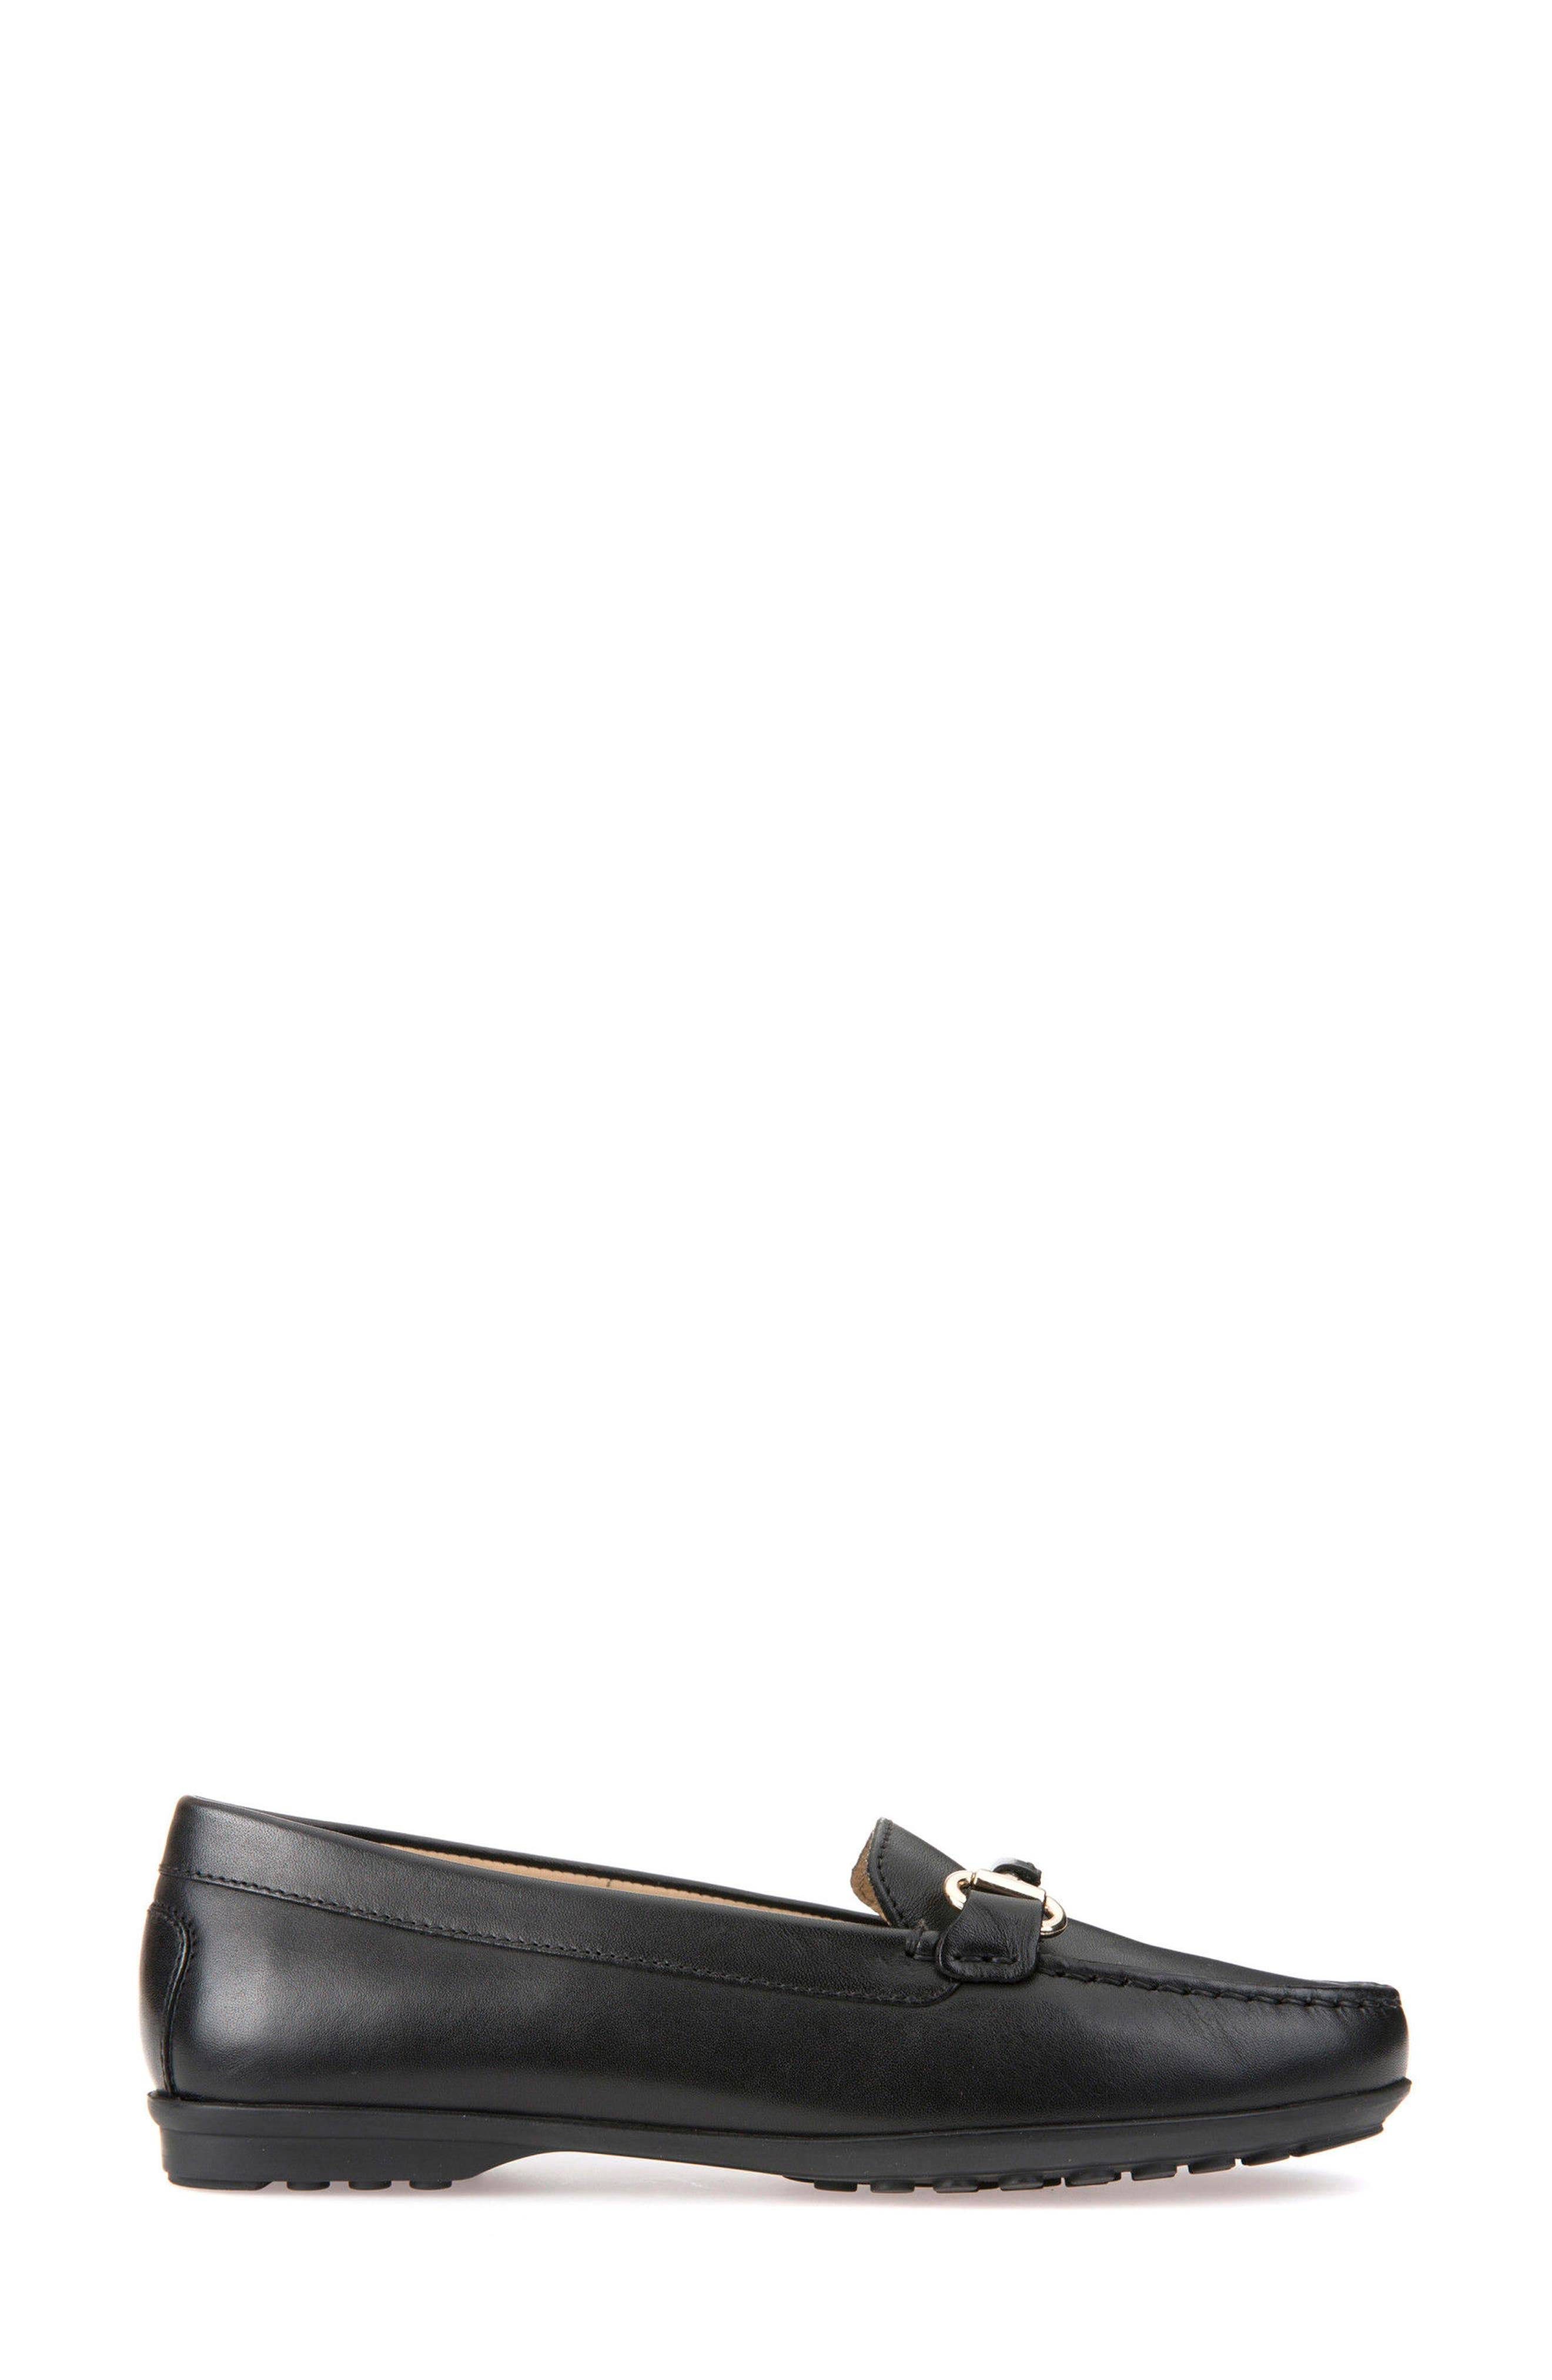 Elidia Buckle Loafer,                             Alternate thumbnail 3, color,                             001